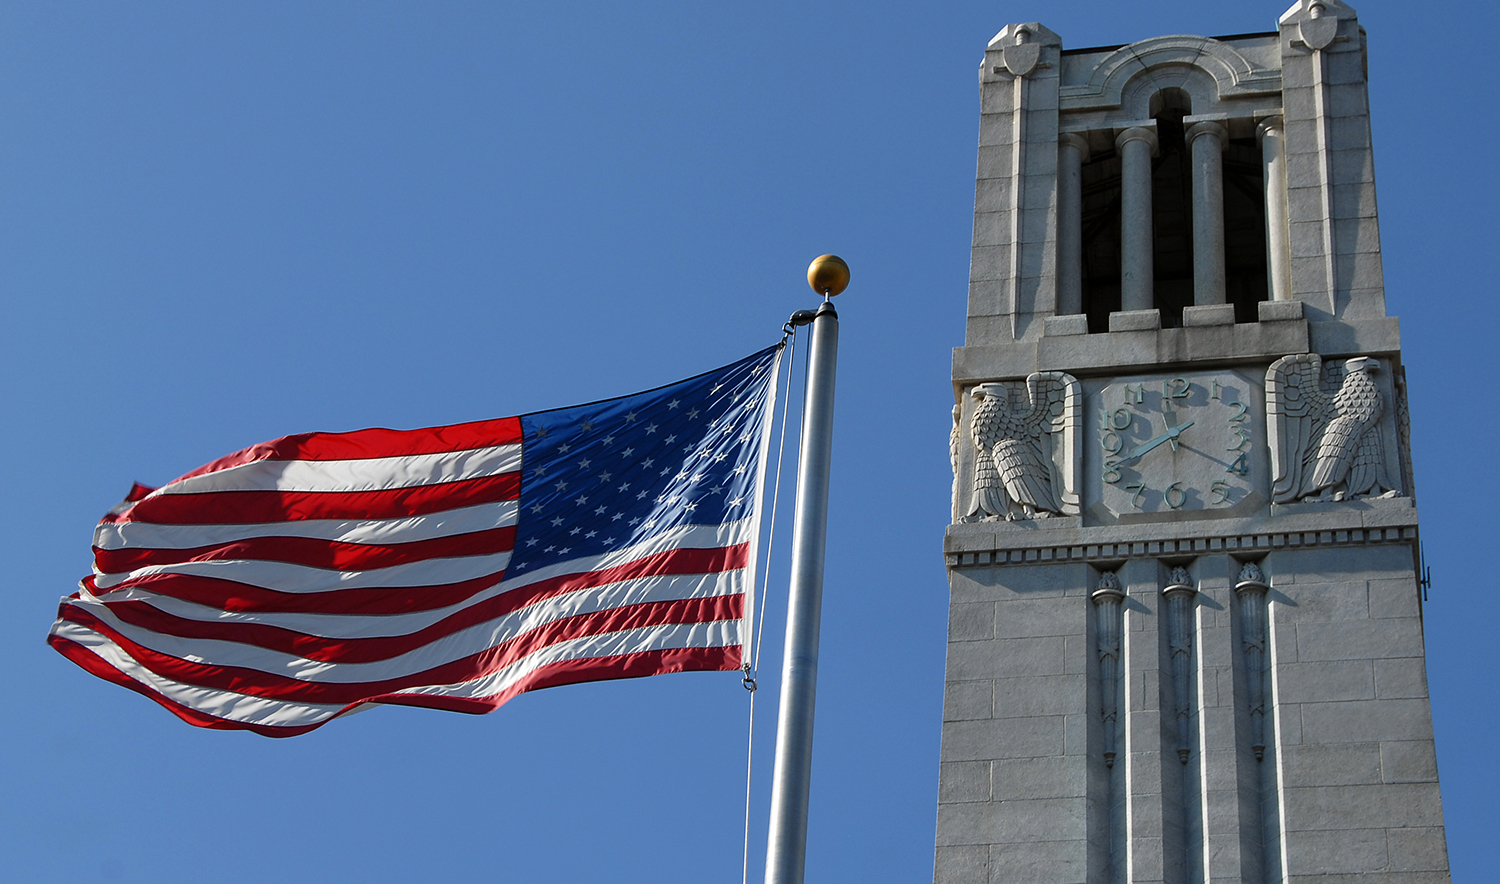 American flag waves in the Fall breeze next to the Belltower